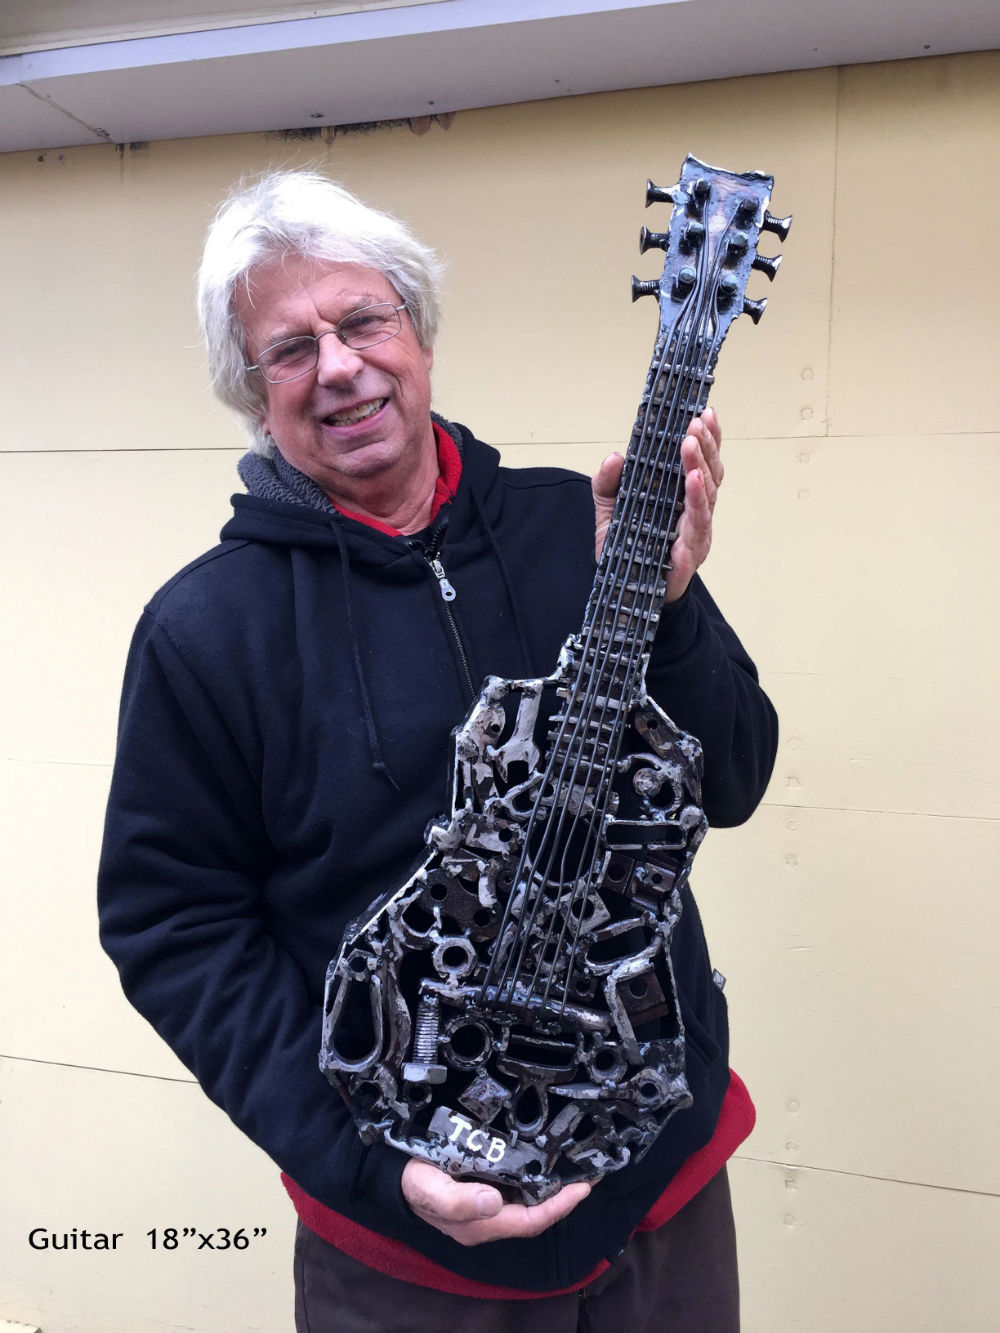 Walden4_opt.jpg